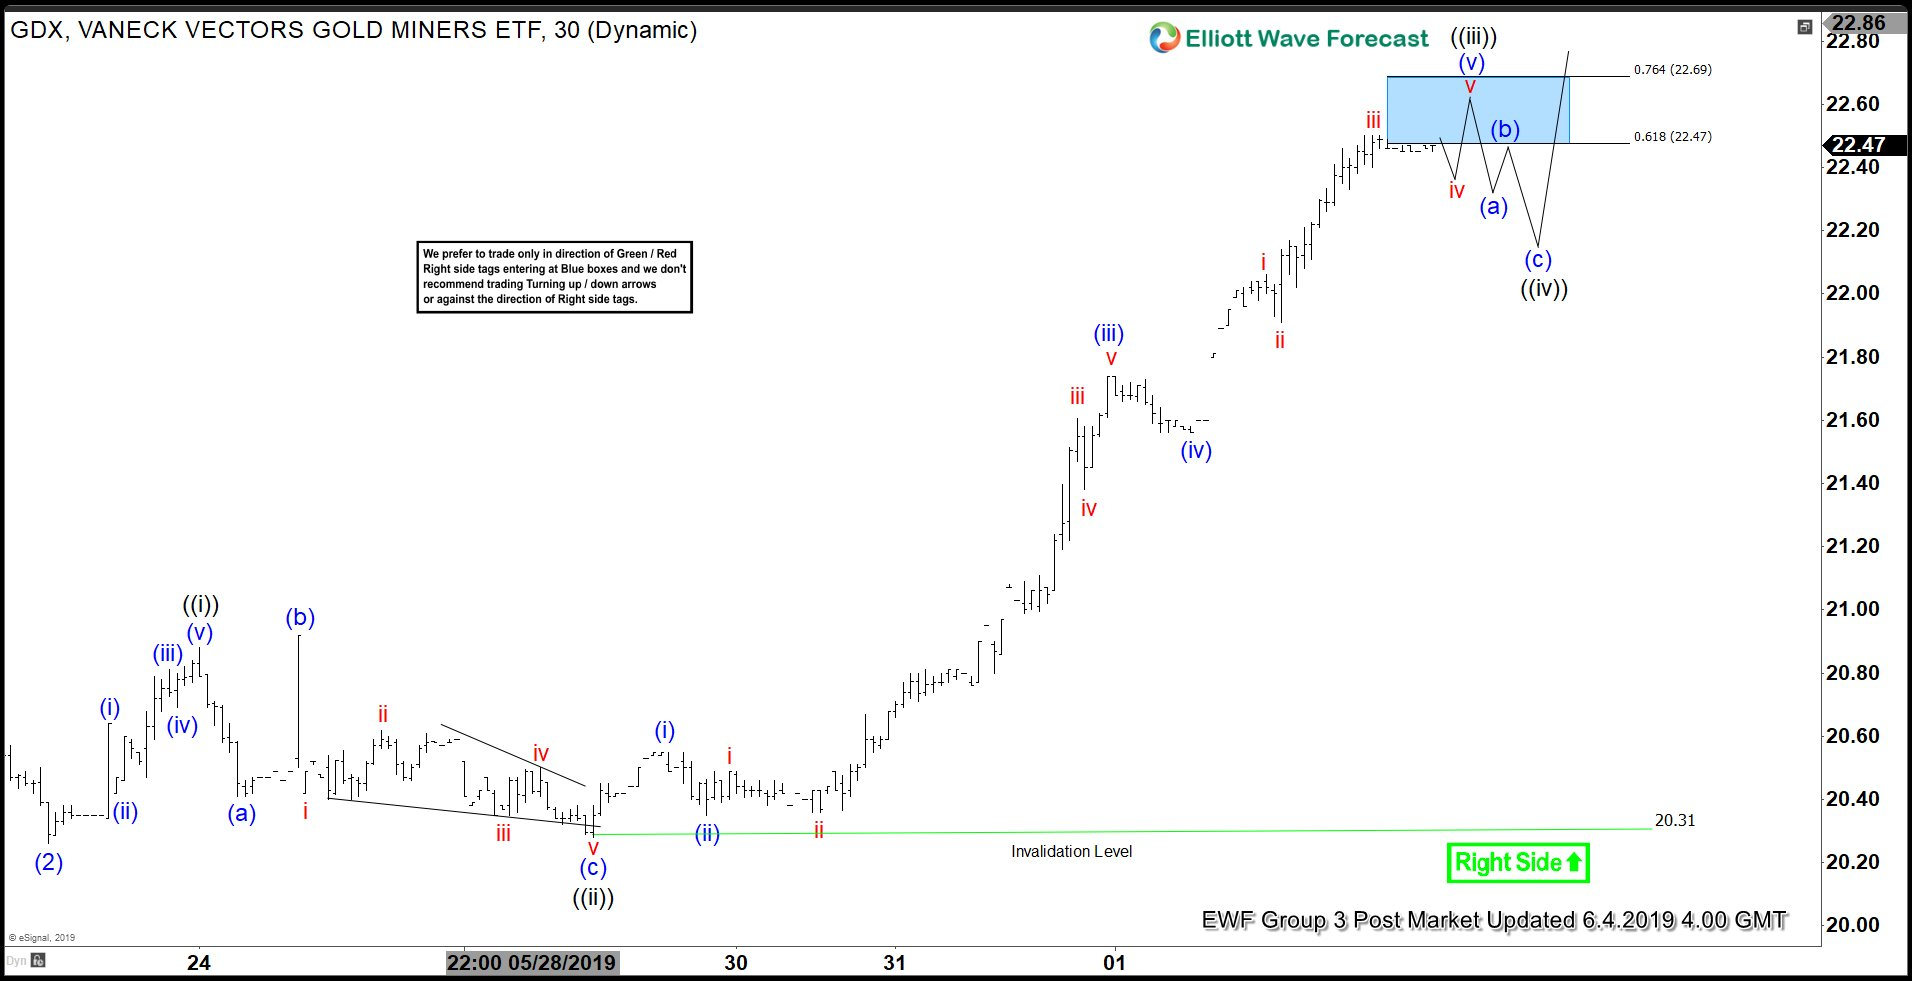 Elliott Wave View: Impulsive Rally in $GDX